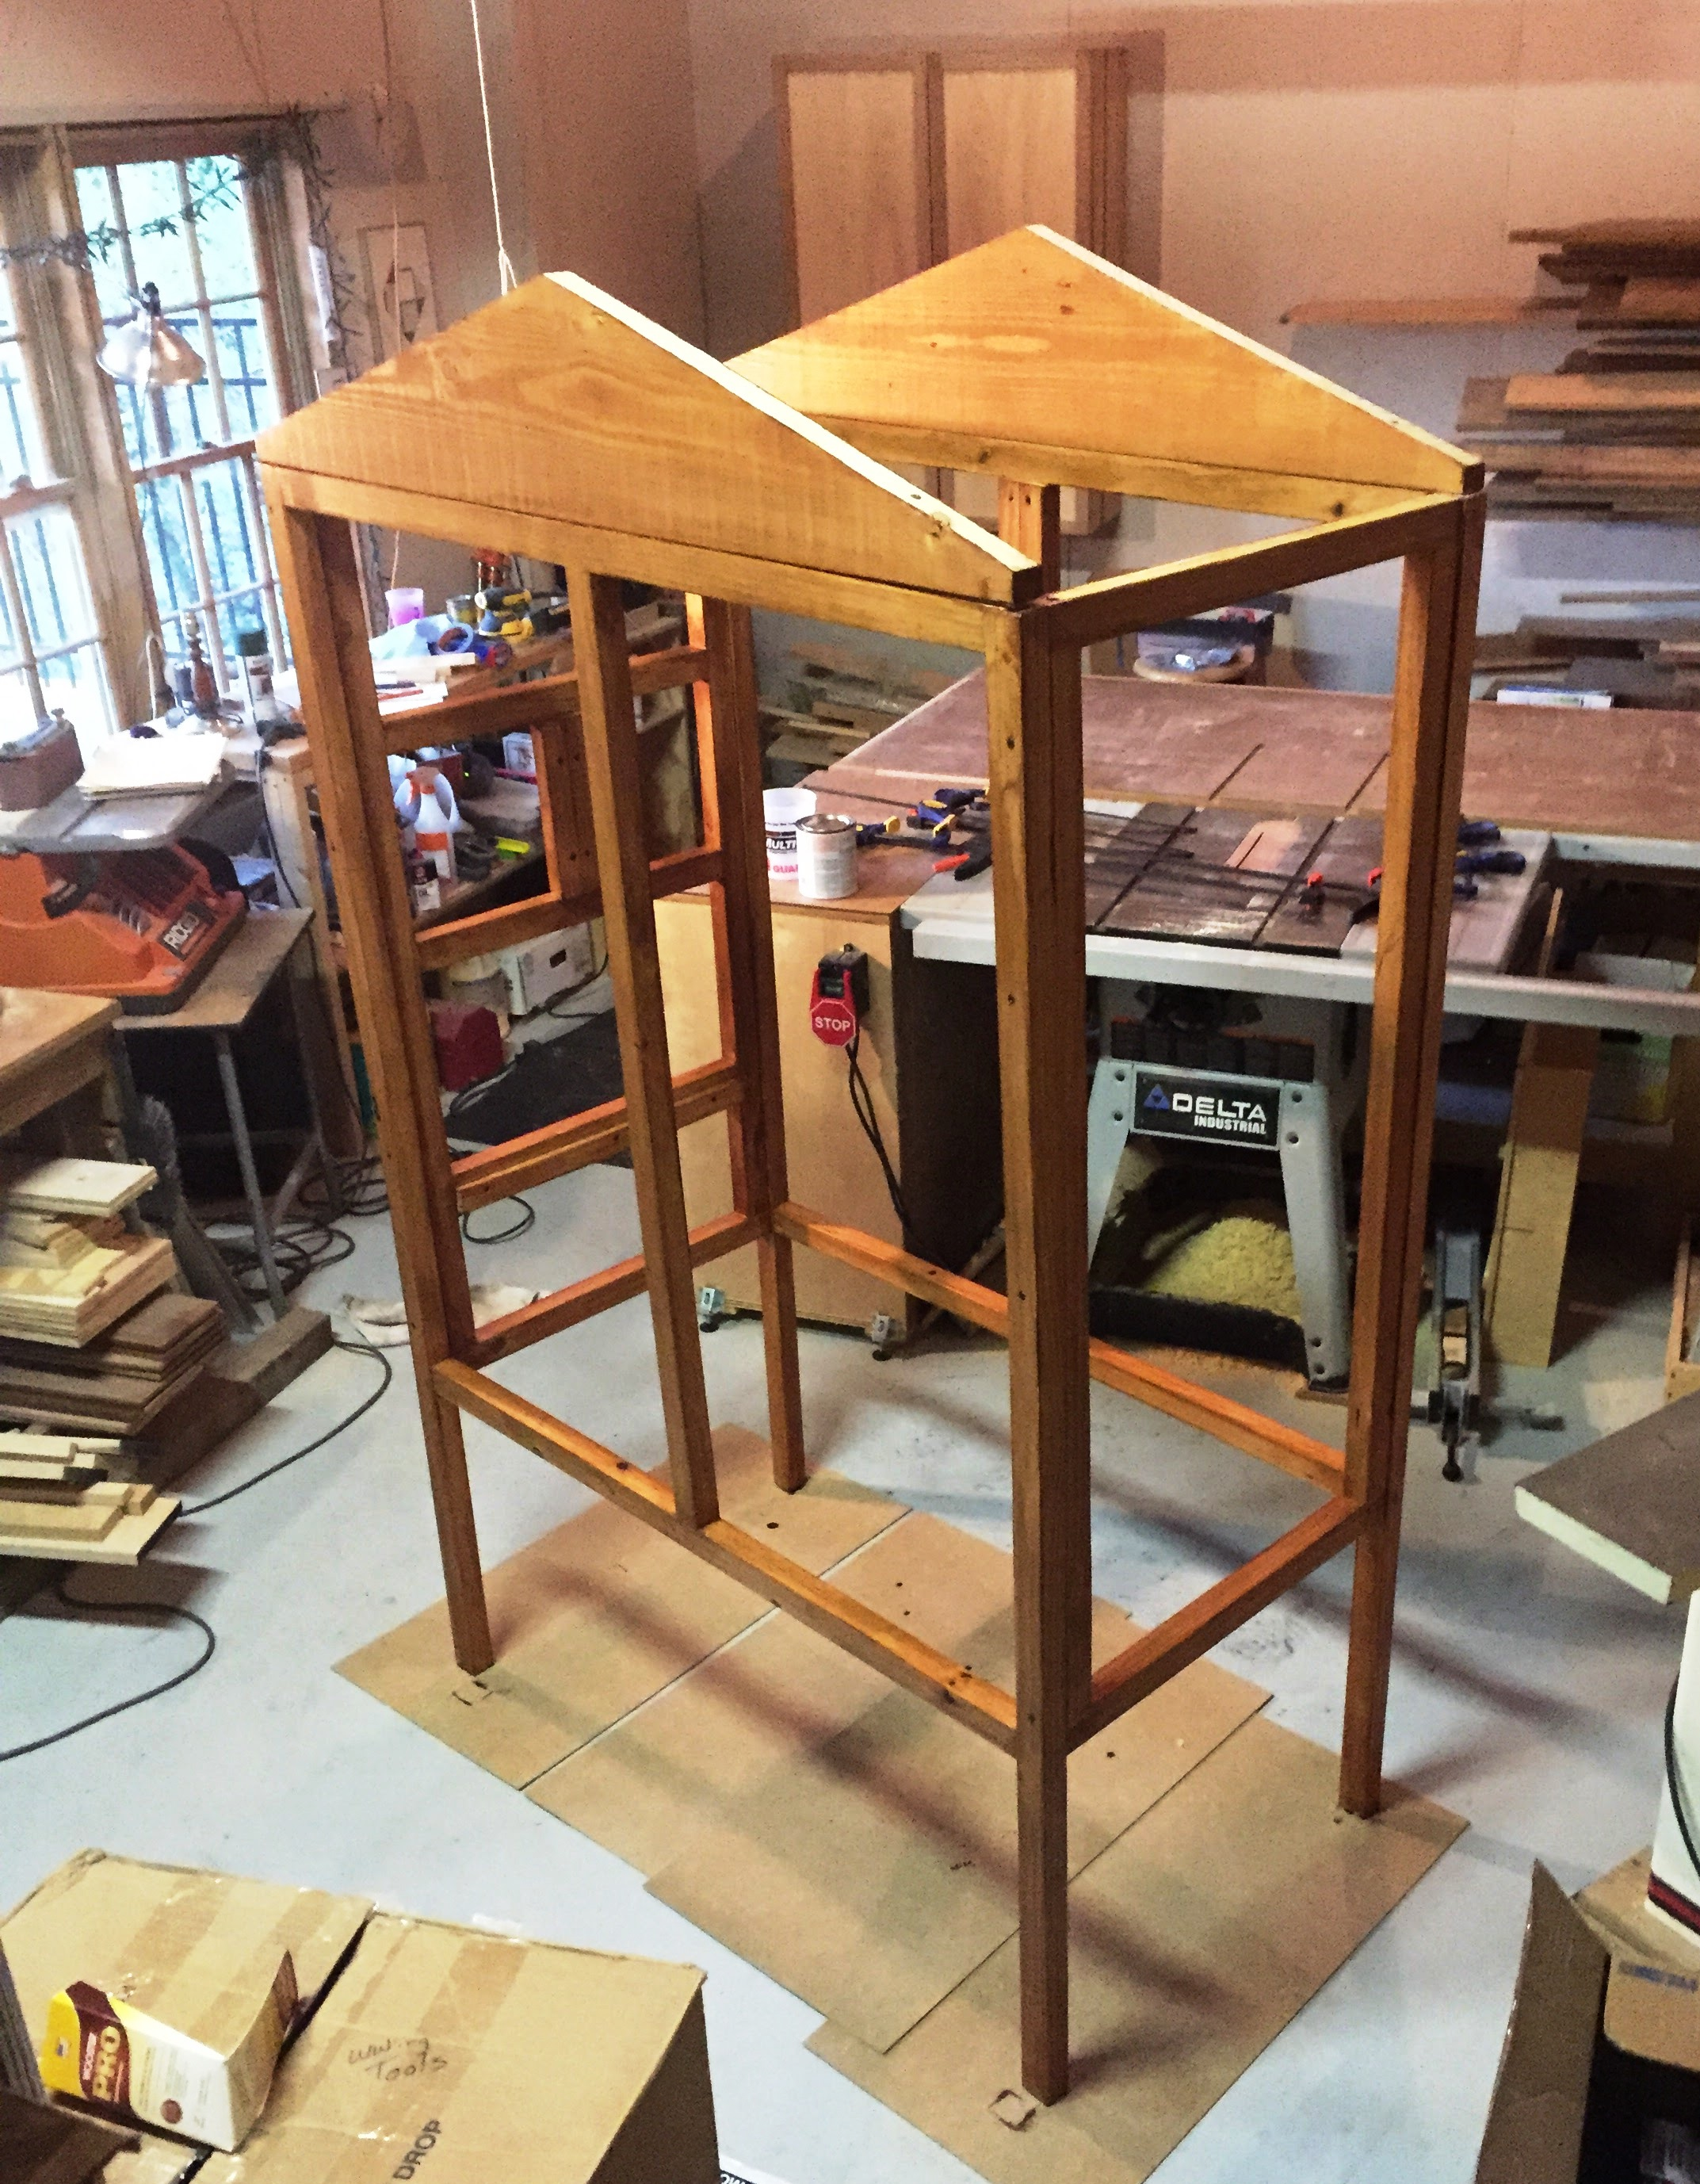 Aviary structure held together with clamps so I can stain it